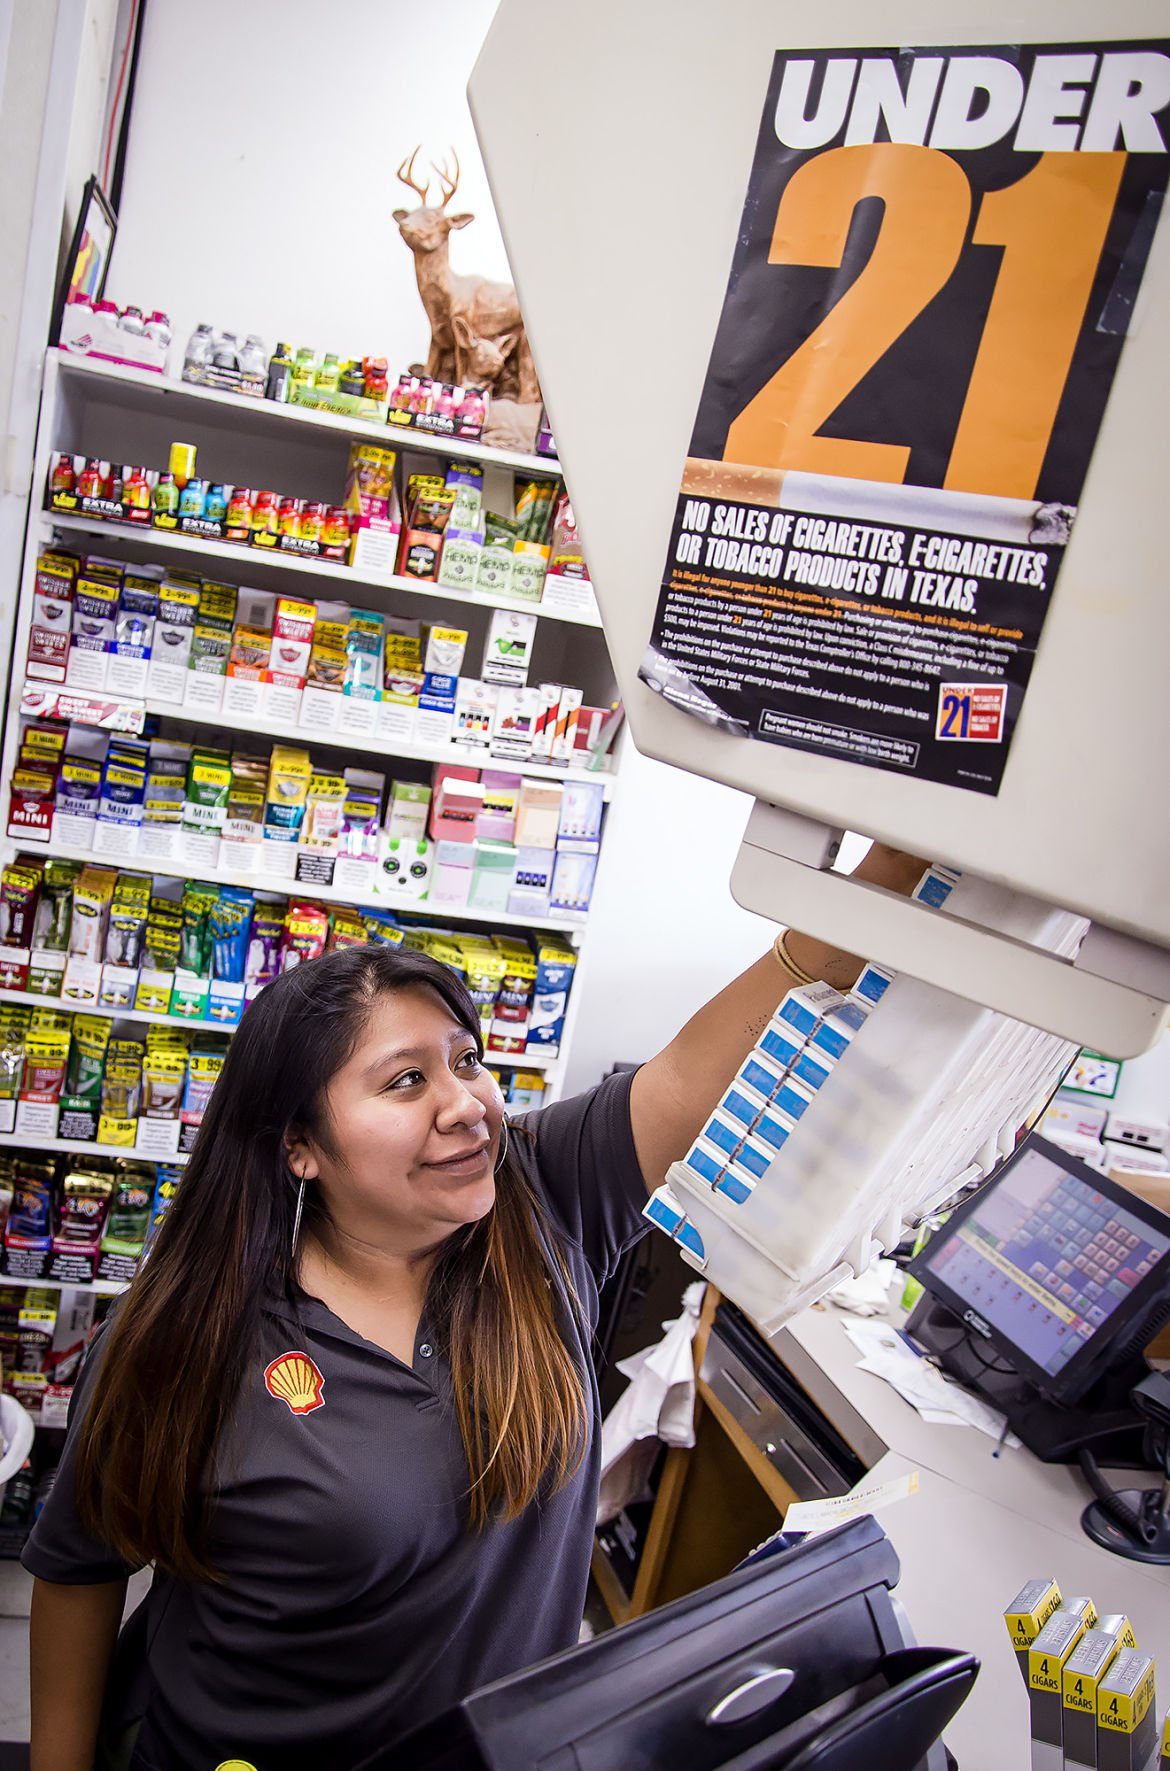 New state laws taking effect Sunday raise tobacco sale age